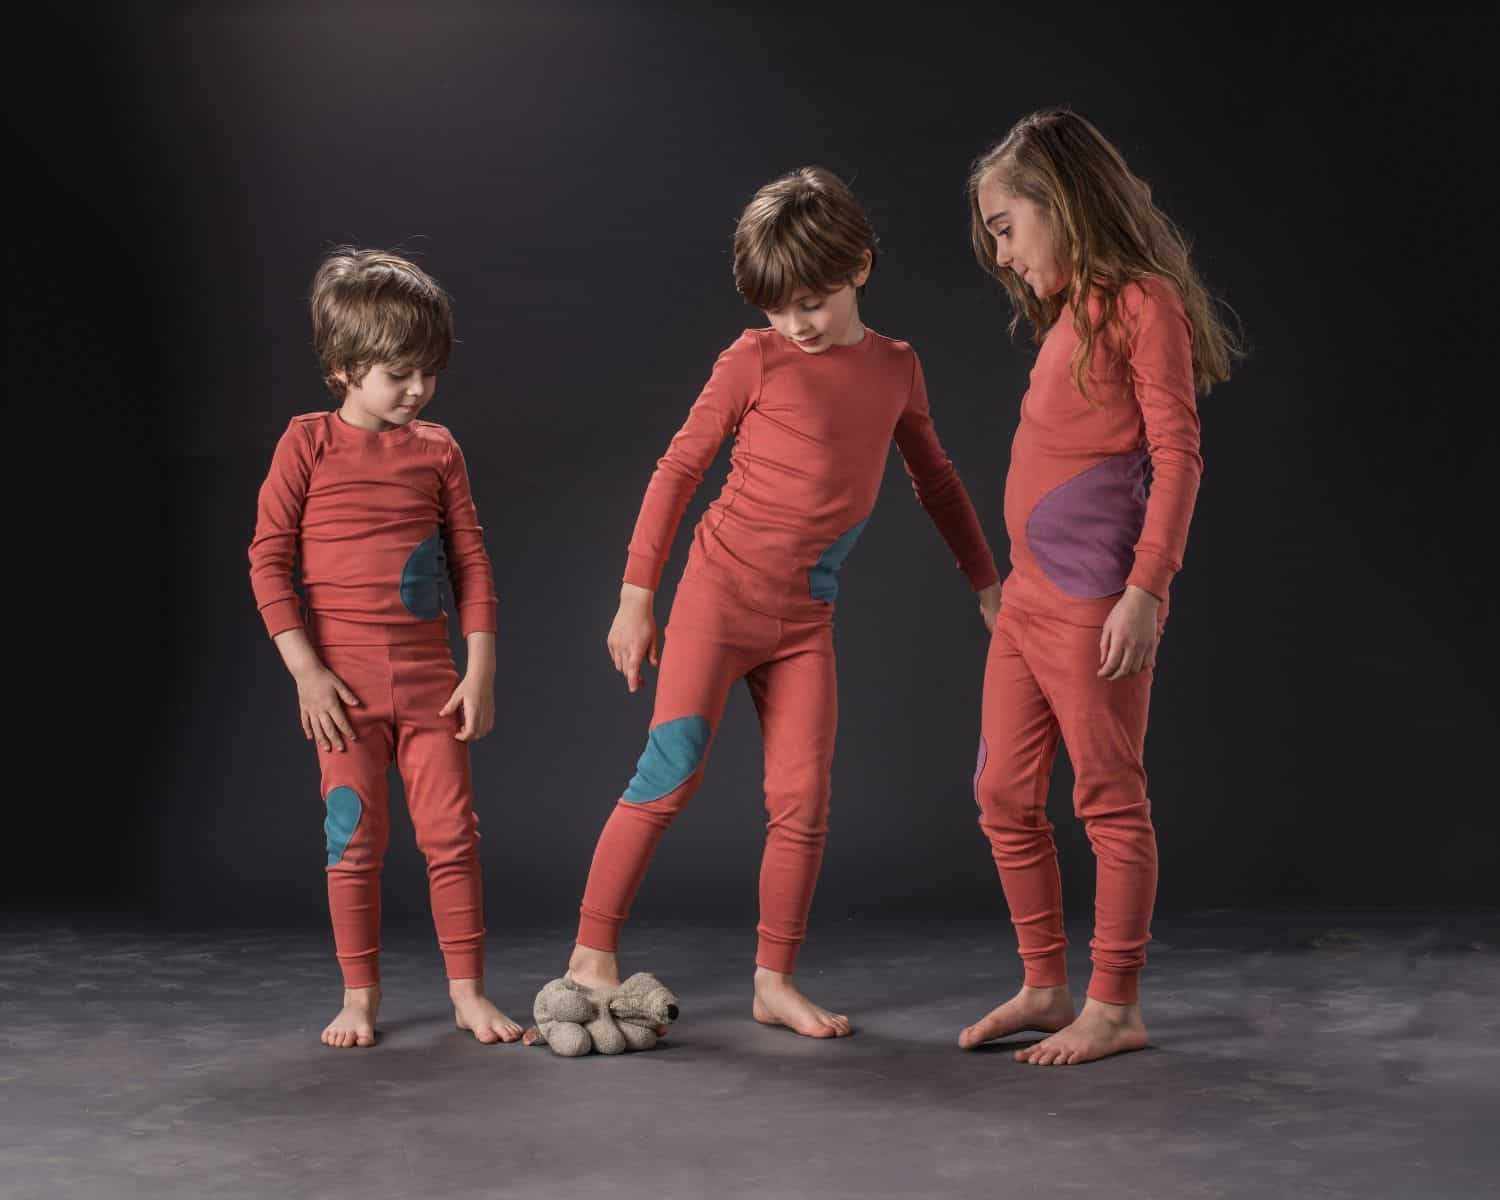 LITTLE TWIG AND SPARROW STYLISH COTTON PAJAMAS